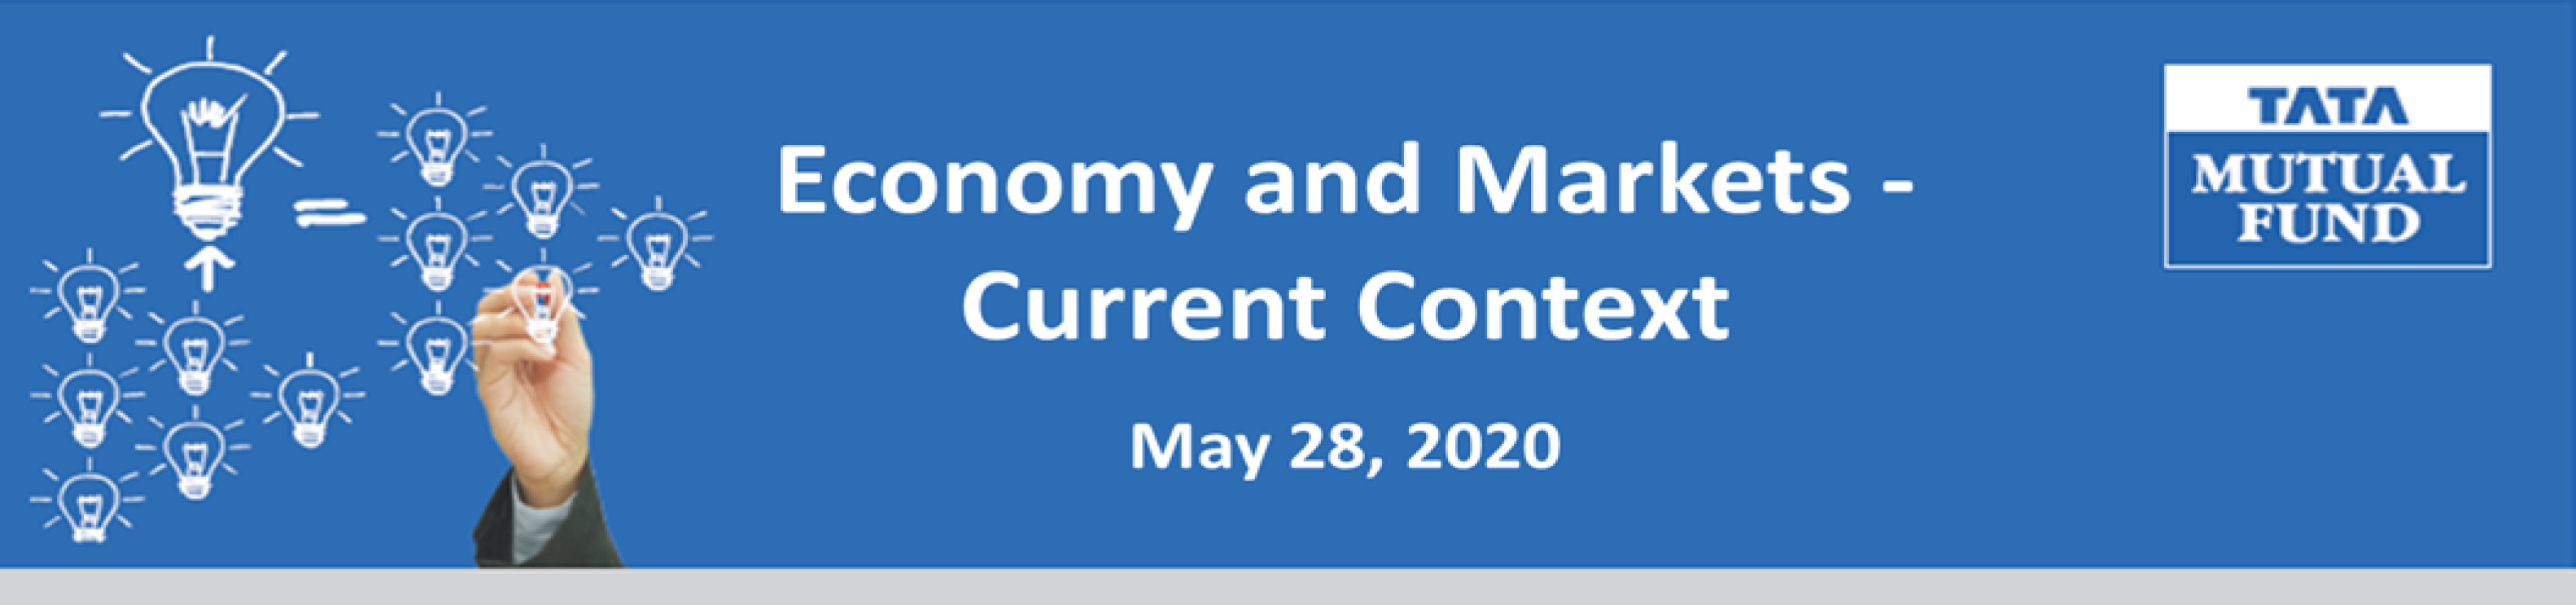 Economy and Markets Current Context Banner